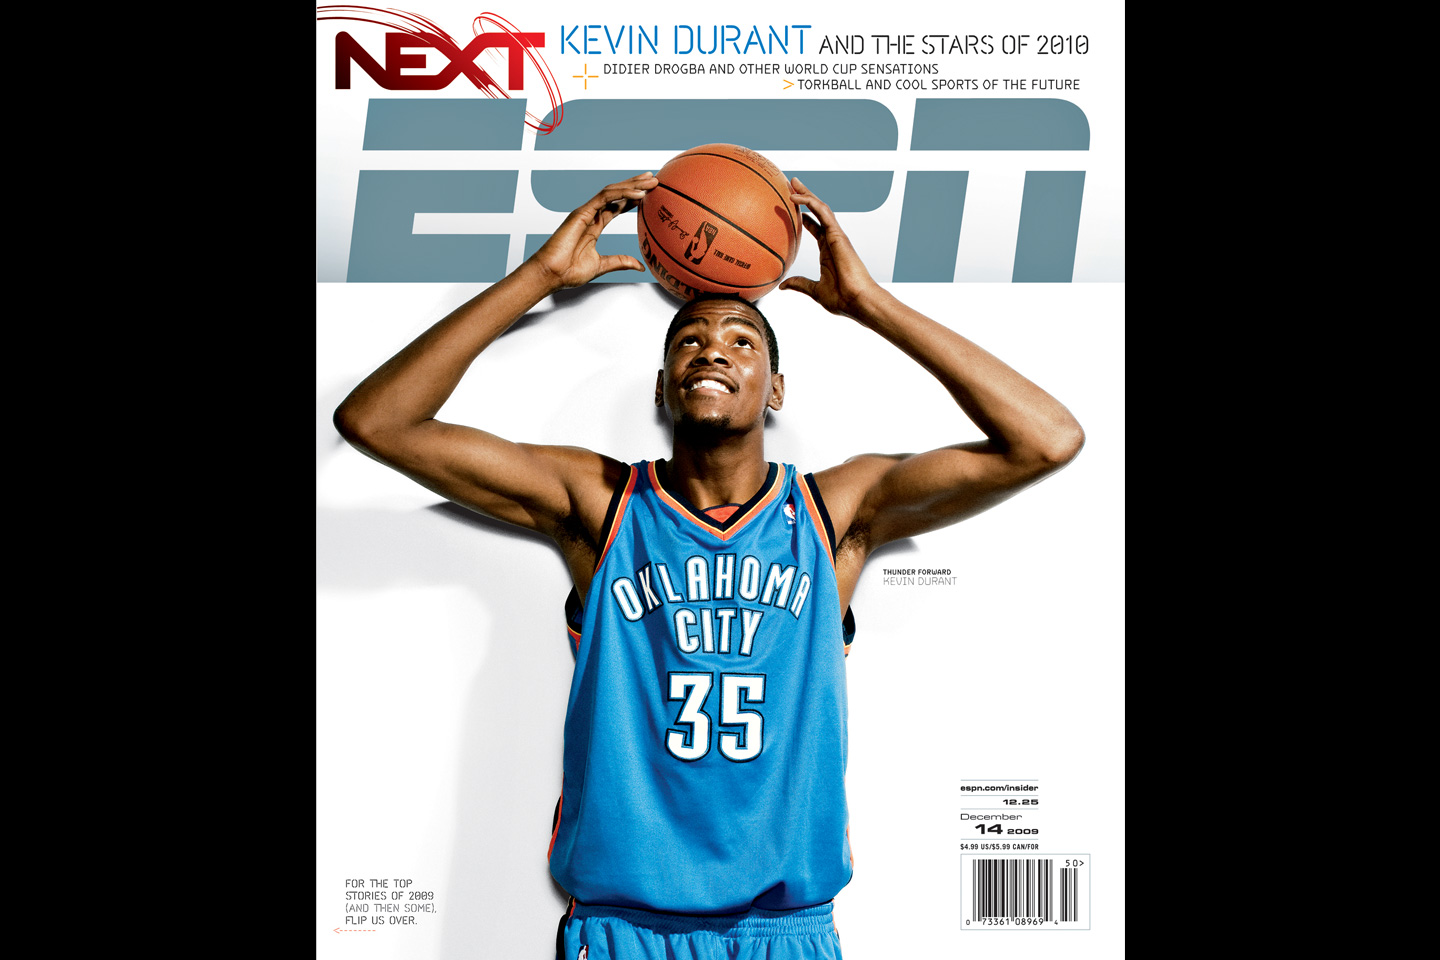 2010: Kevin Durant